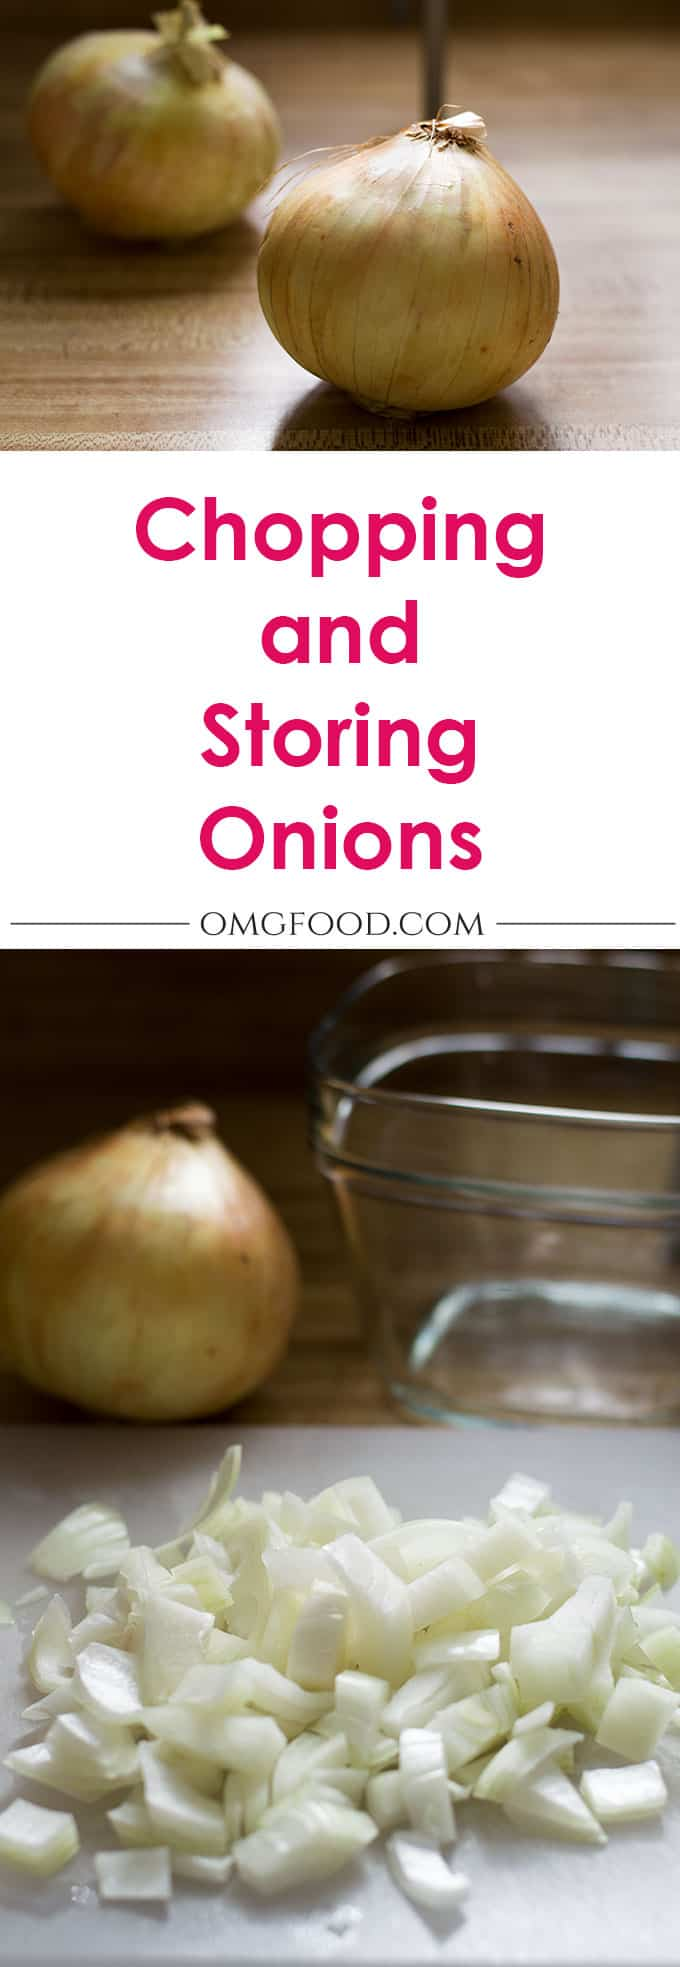 Pinterest banner for chopping and storing onions.